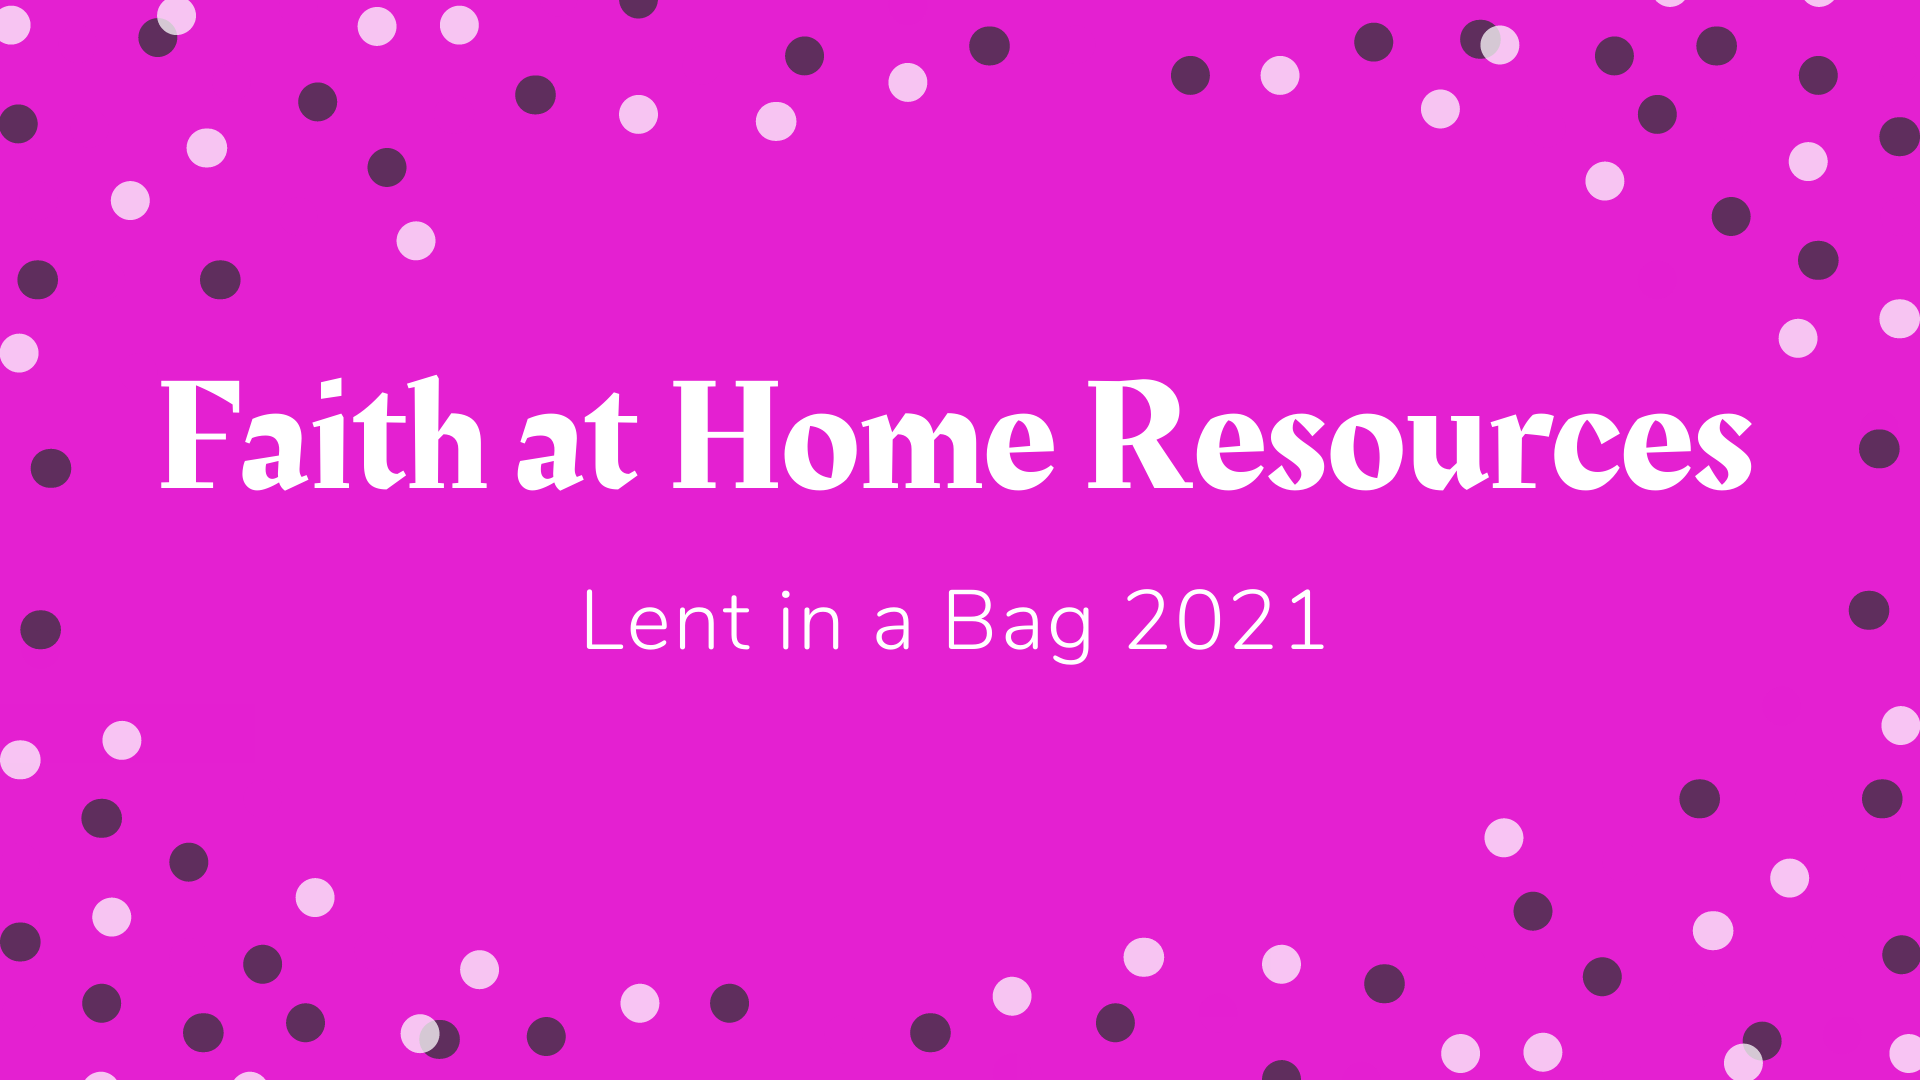 Faith at Home Resources for Lent